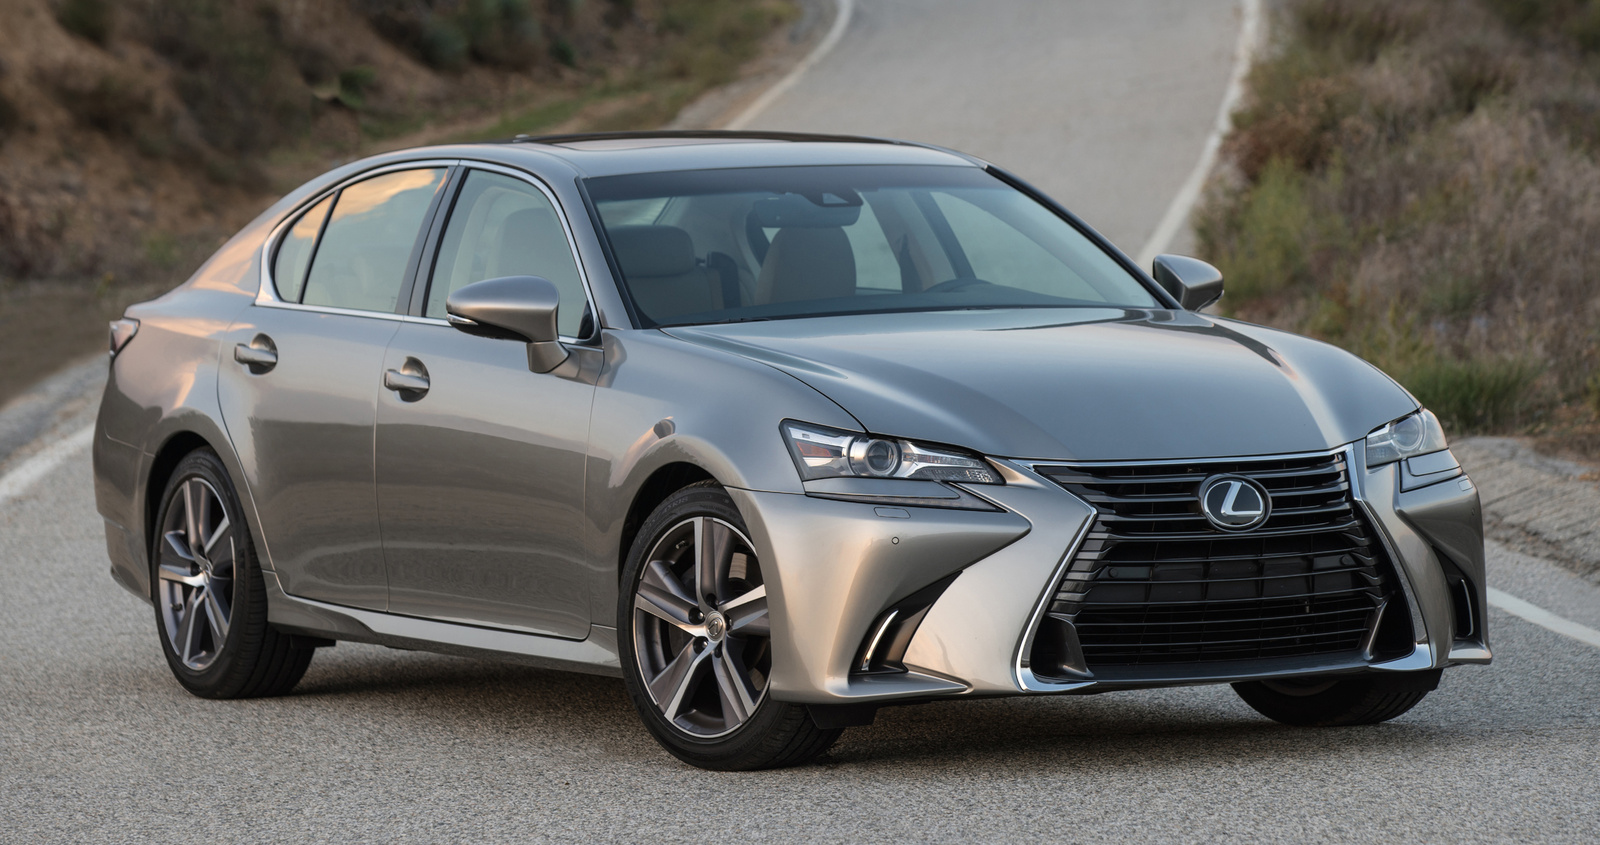 2016 lexus gs 200t for sale in grand rapids mi cargurus. Black Bedroom Furniture Sets. Home Design Ideas